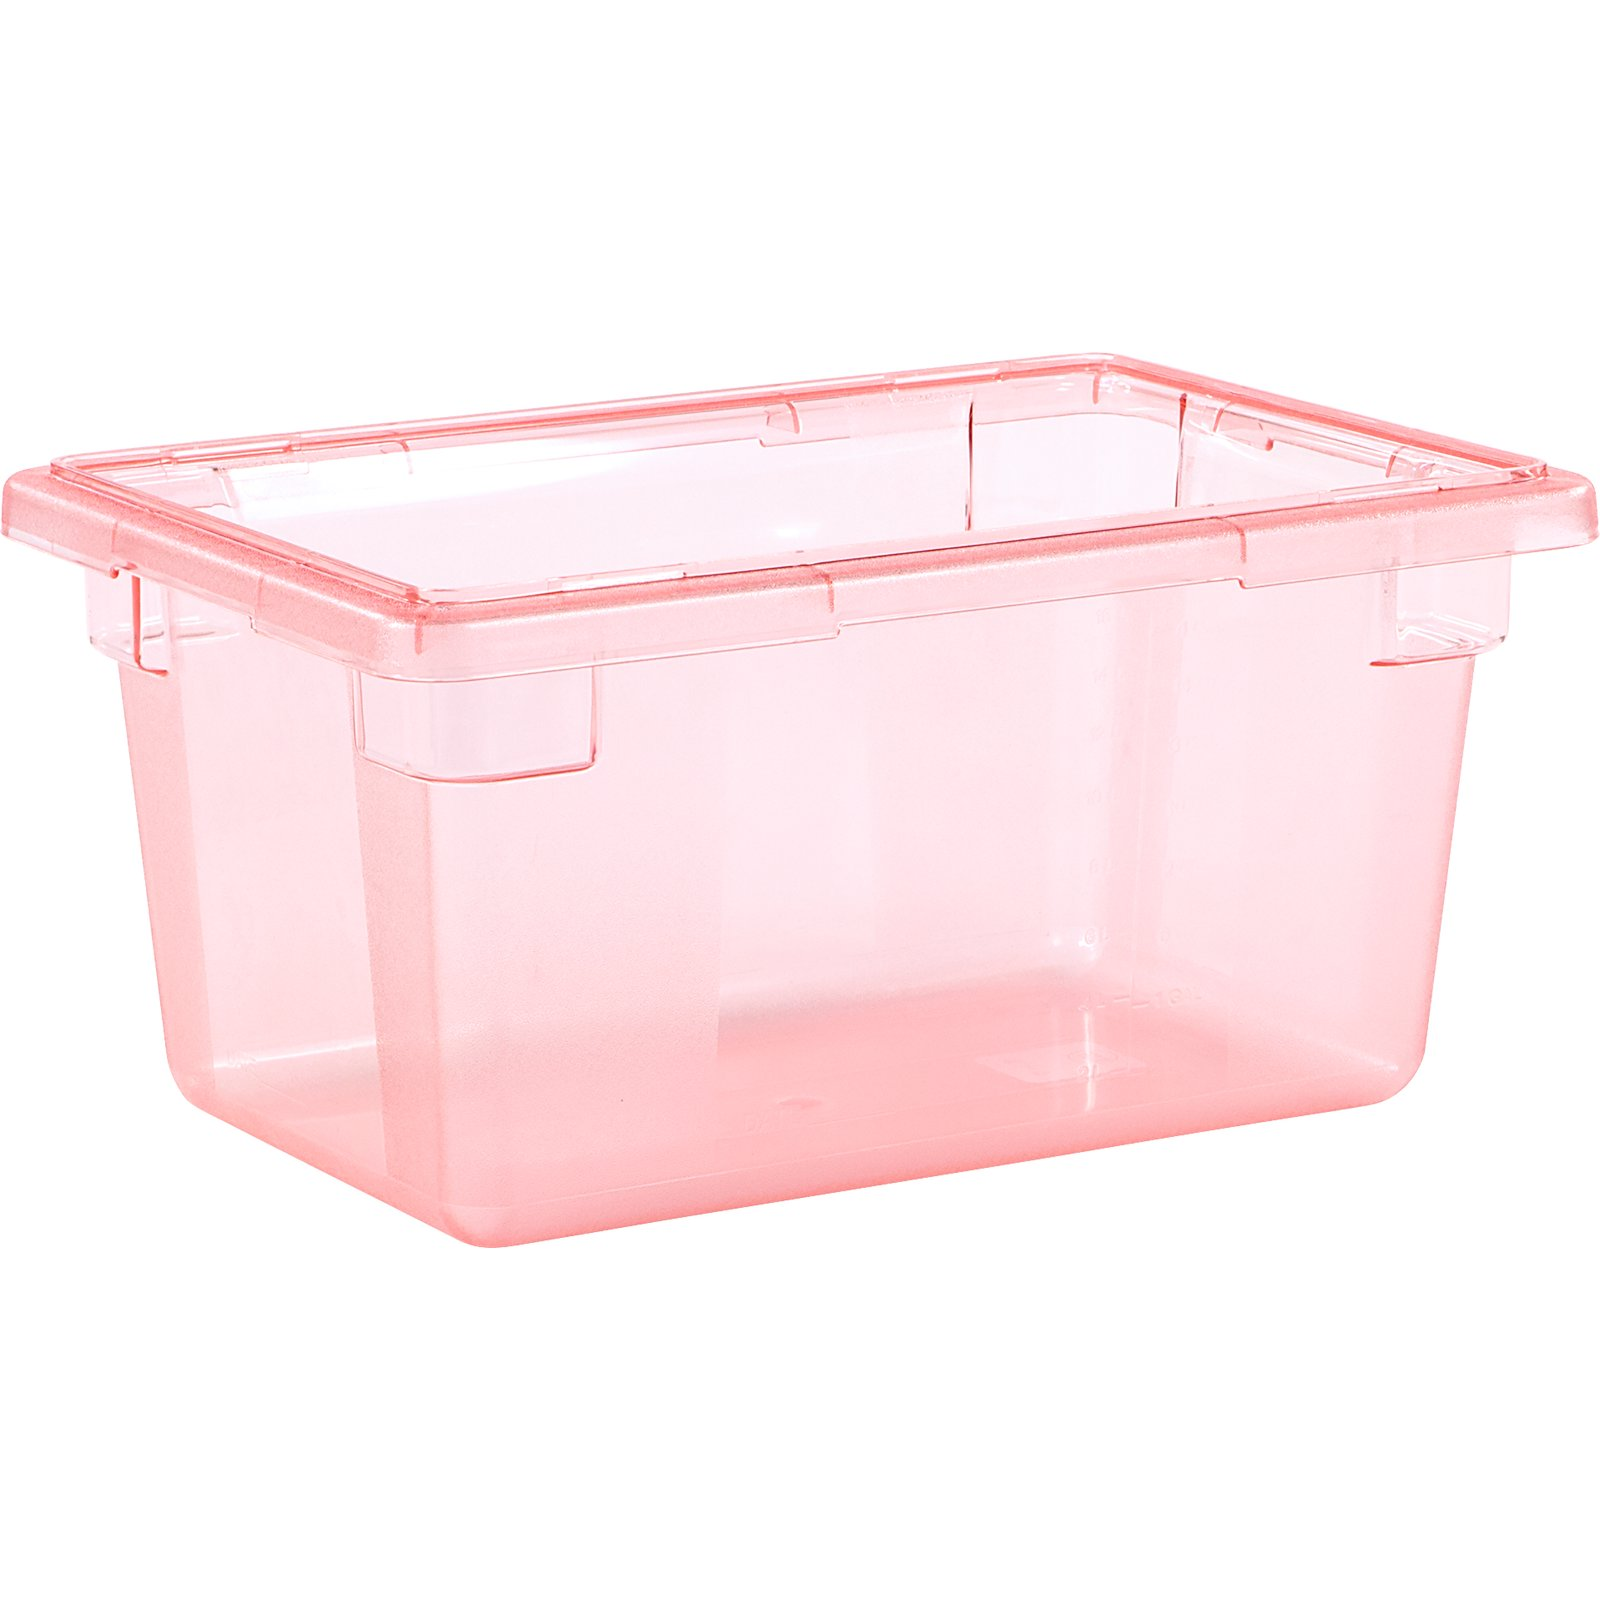 10612C05 StorPlus Color Coded Food Box Storage Container 5 Gallon